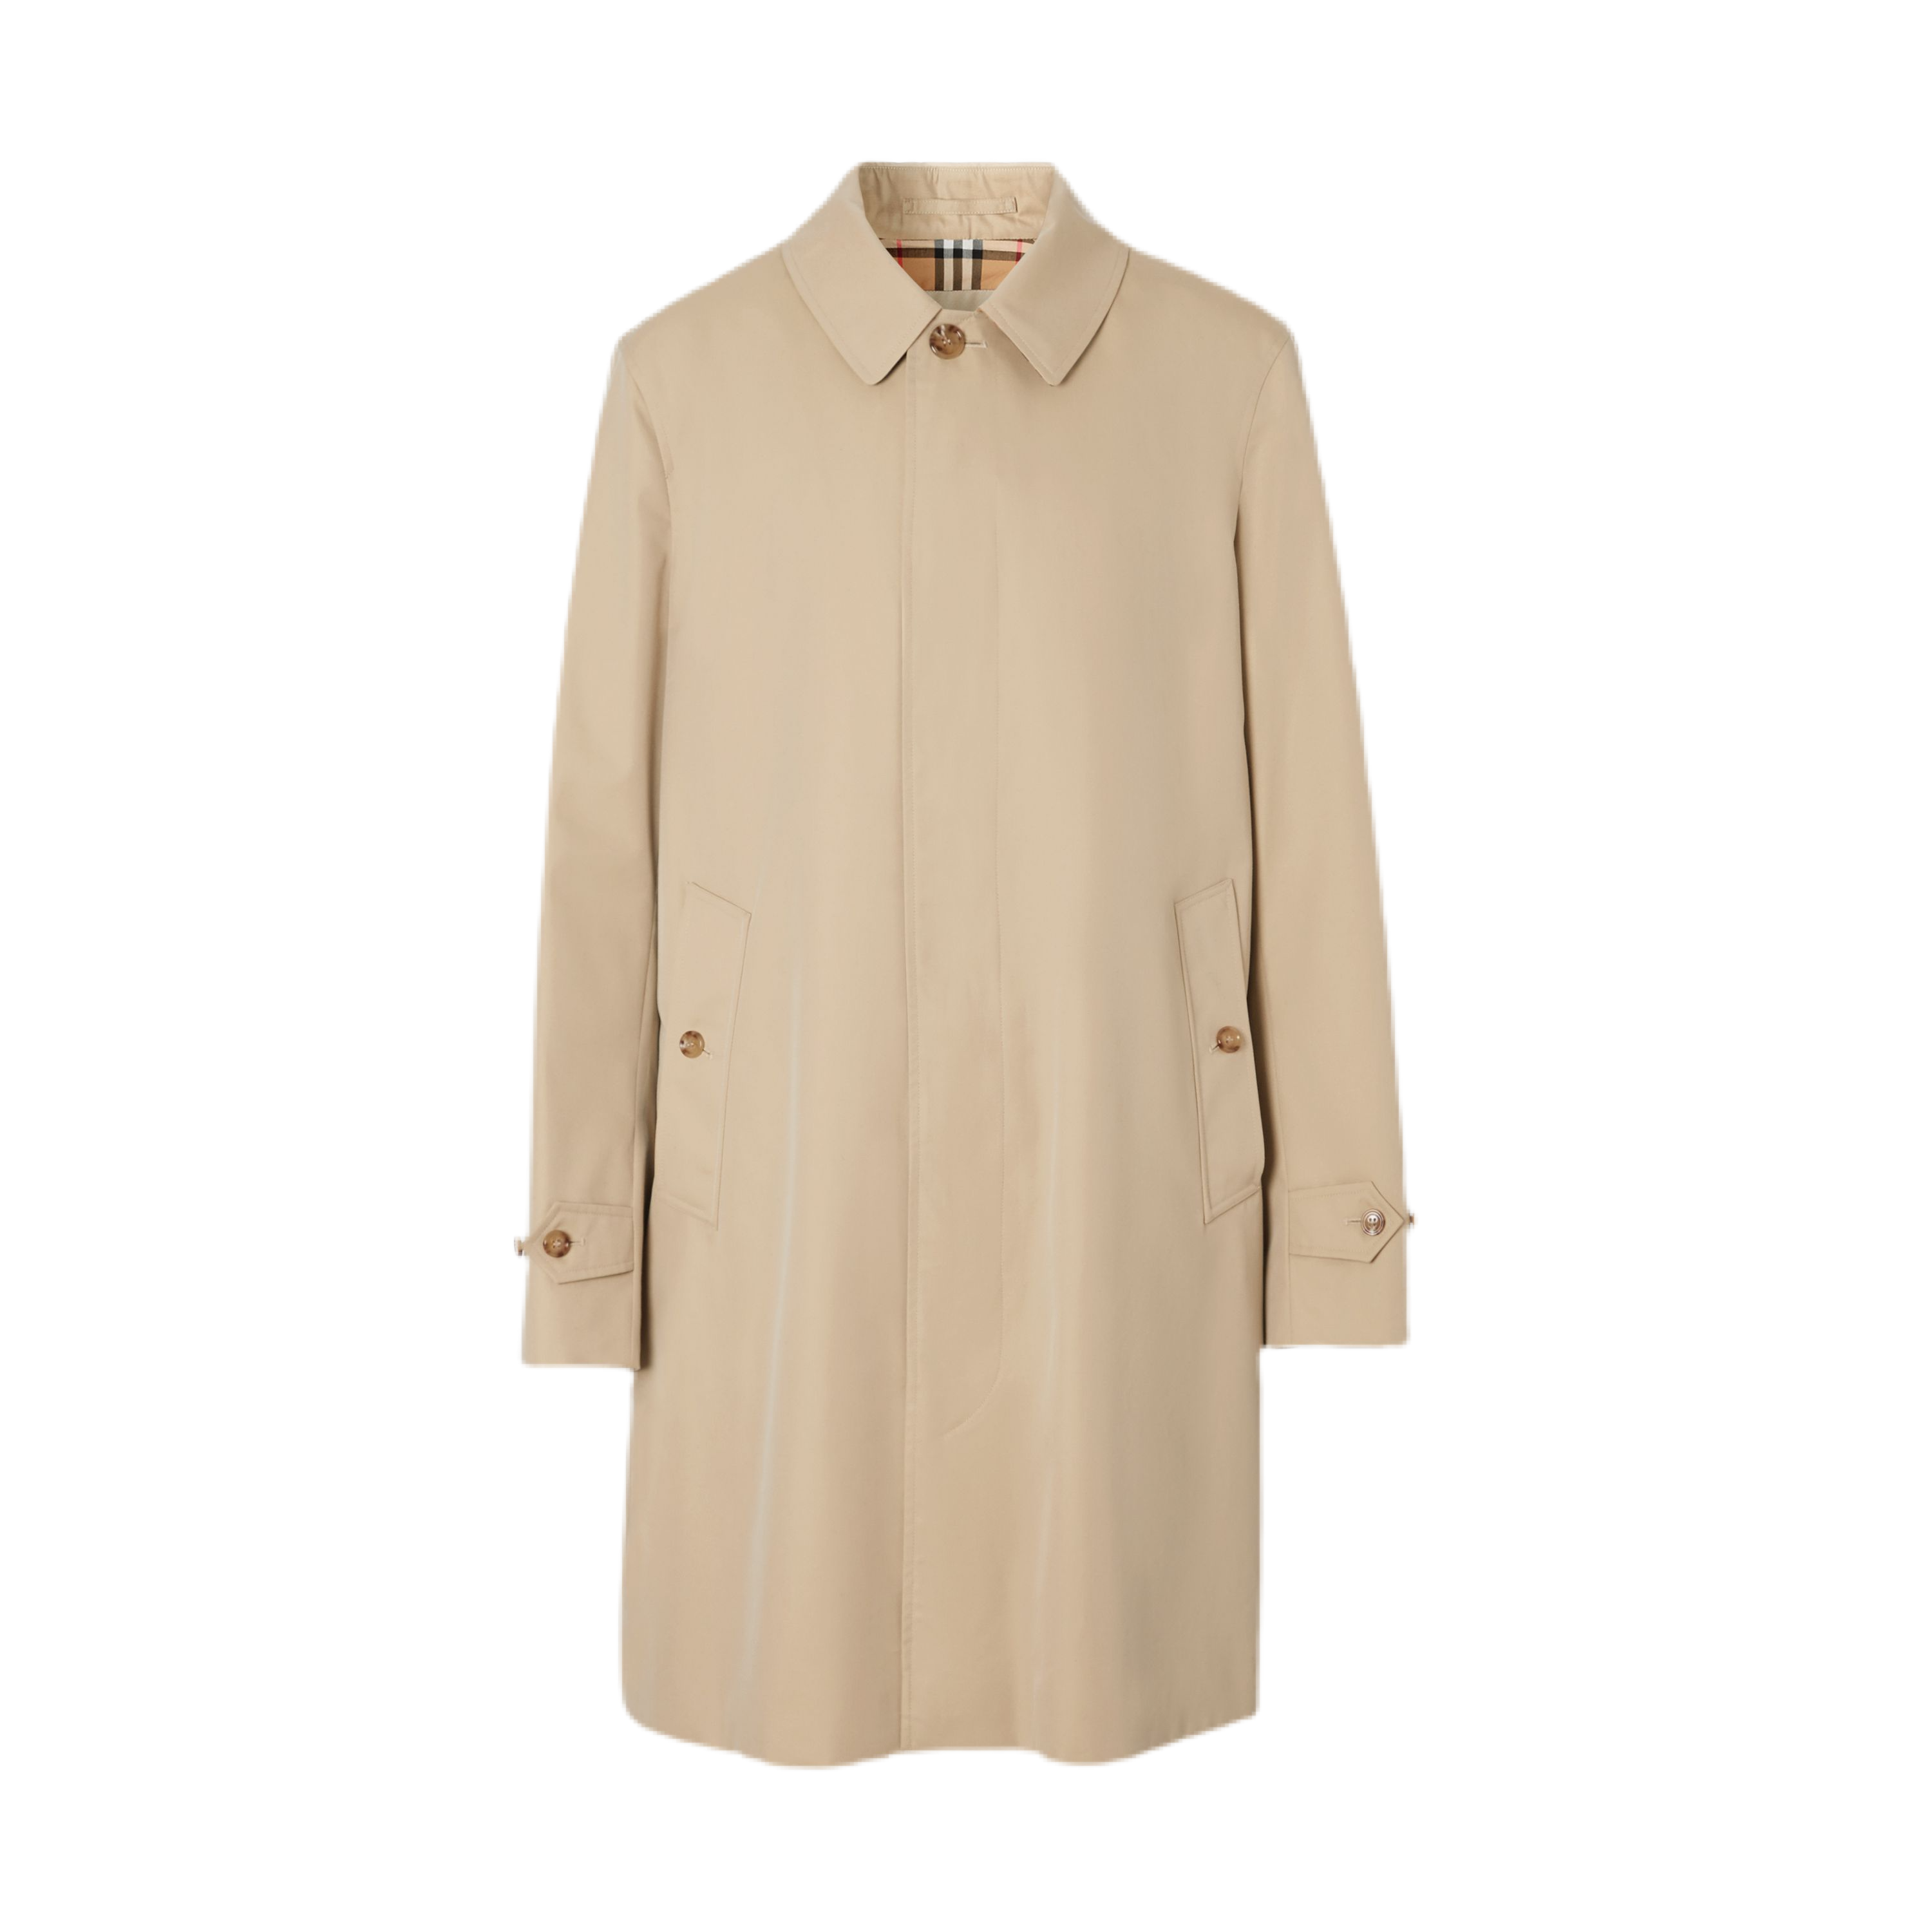 Burberry Trenchcoat Guide: Burberry Trenchcoats-Modelle im Überblick